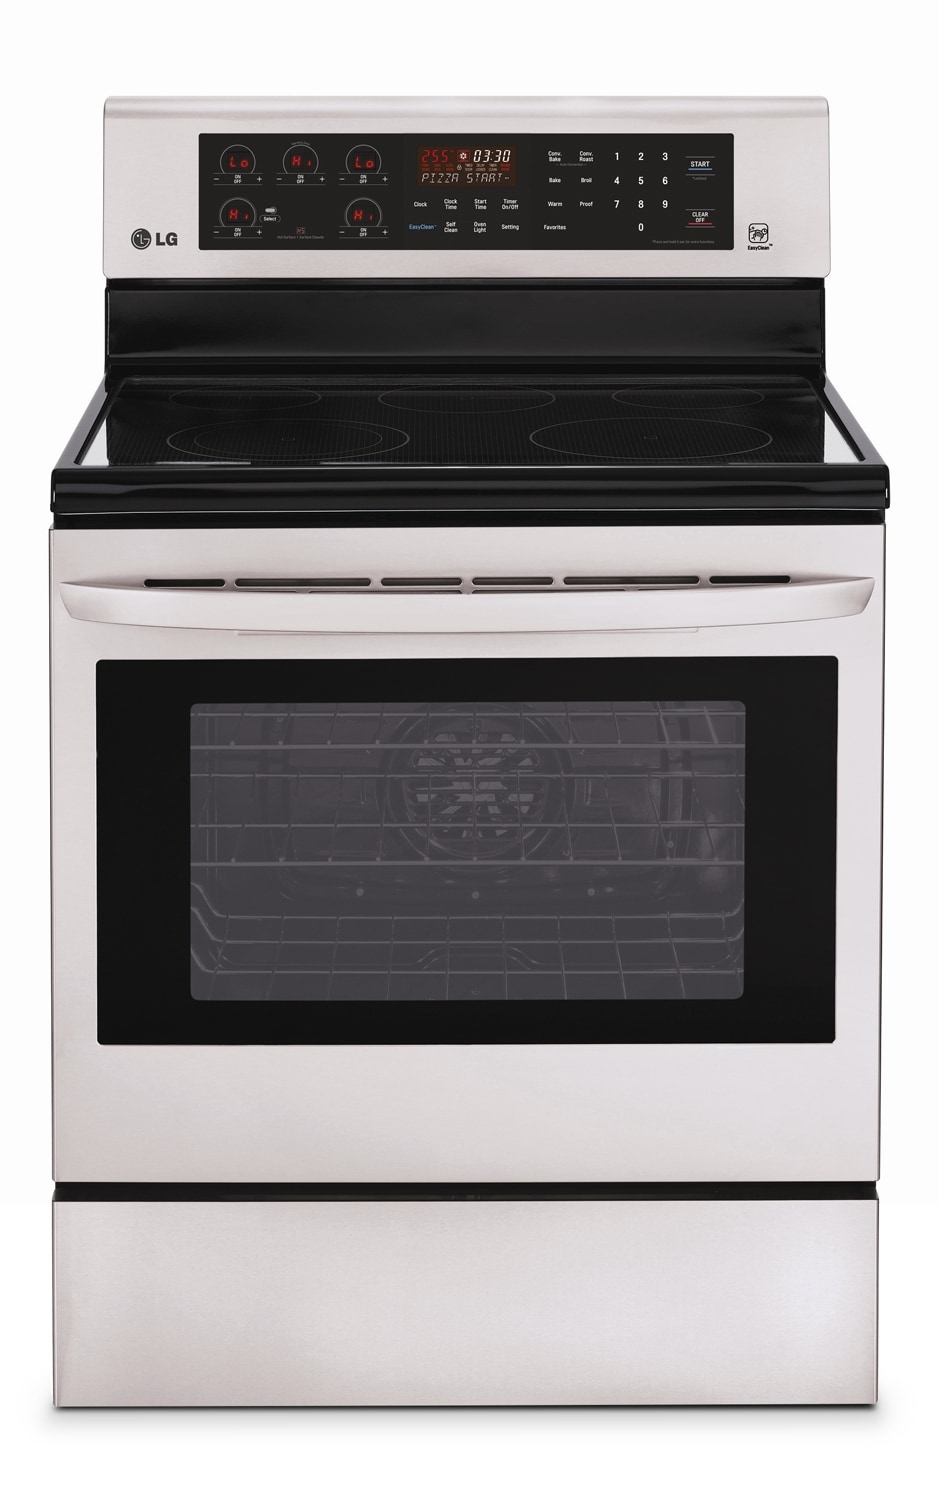 LG Appliances Freestanding Stainless Steel Electric Convection Range (6.3 Cu. Ft.) - LRE6383ST